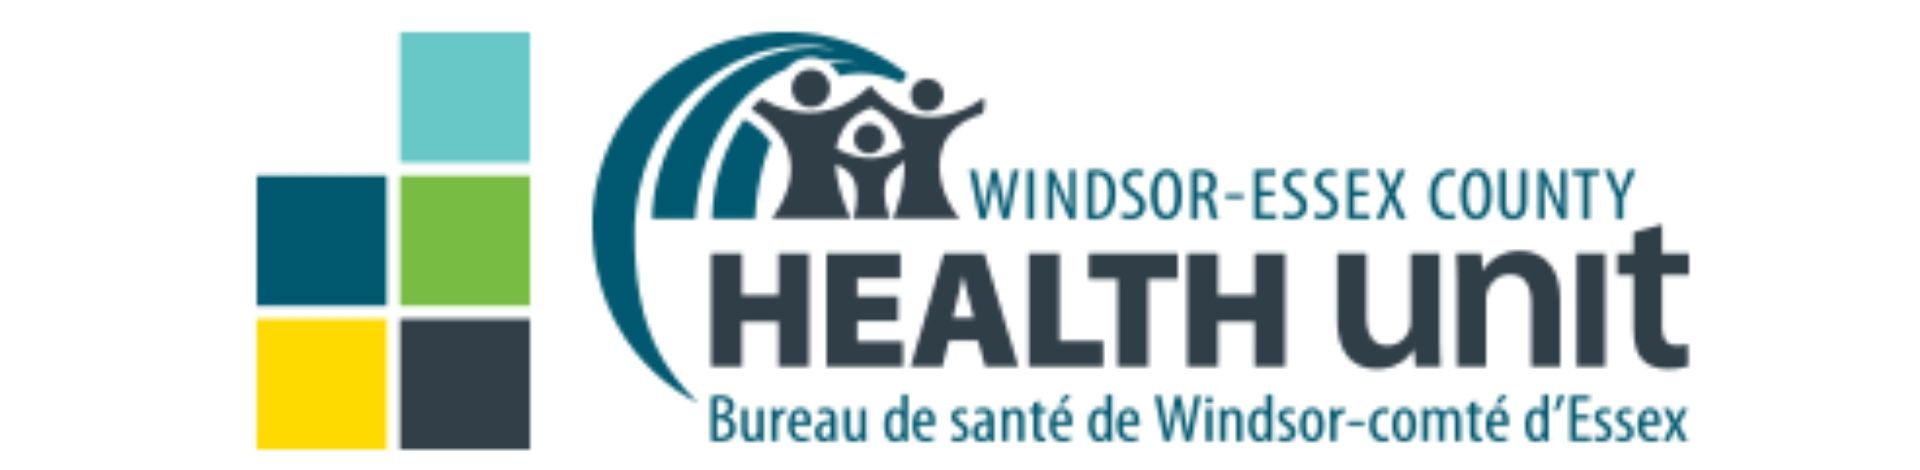 Health Unit logo